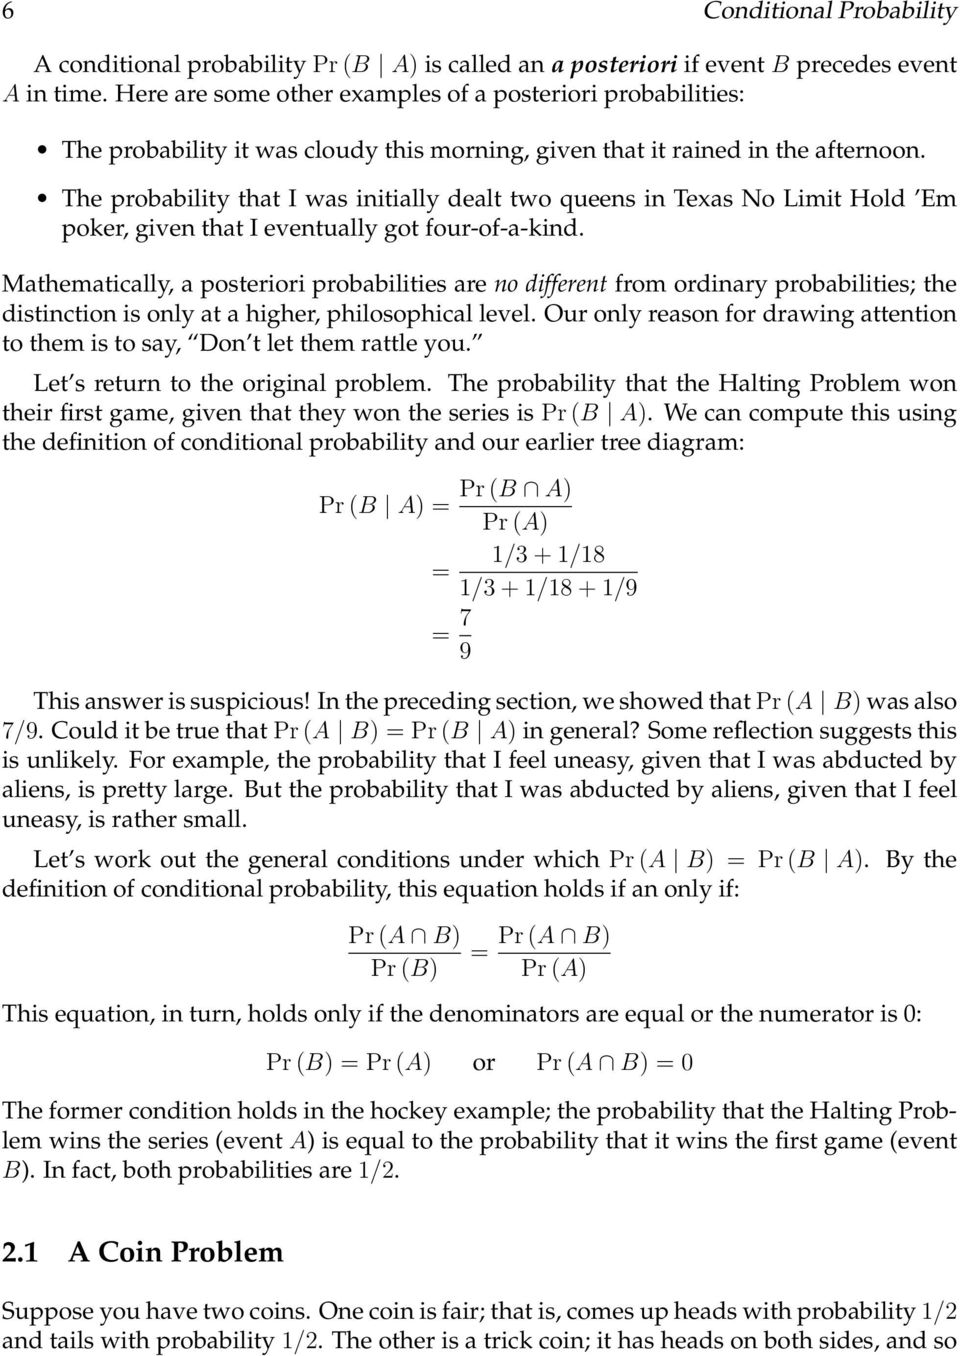 Conditional Probability - PDF